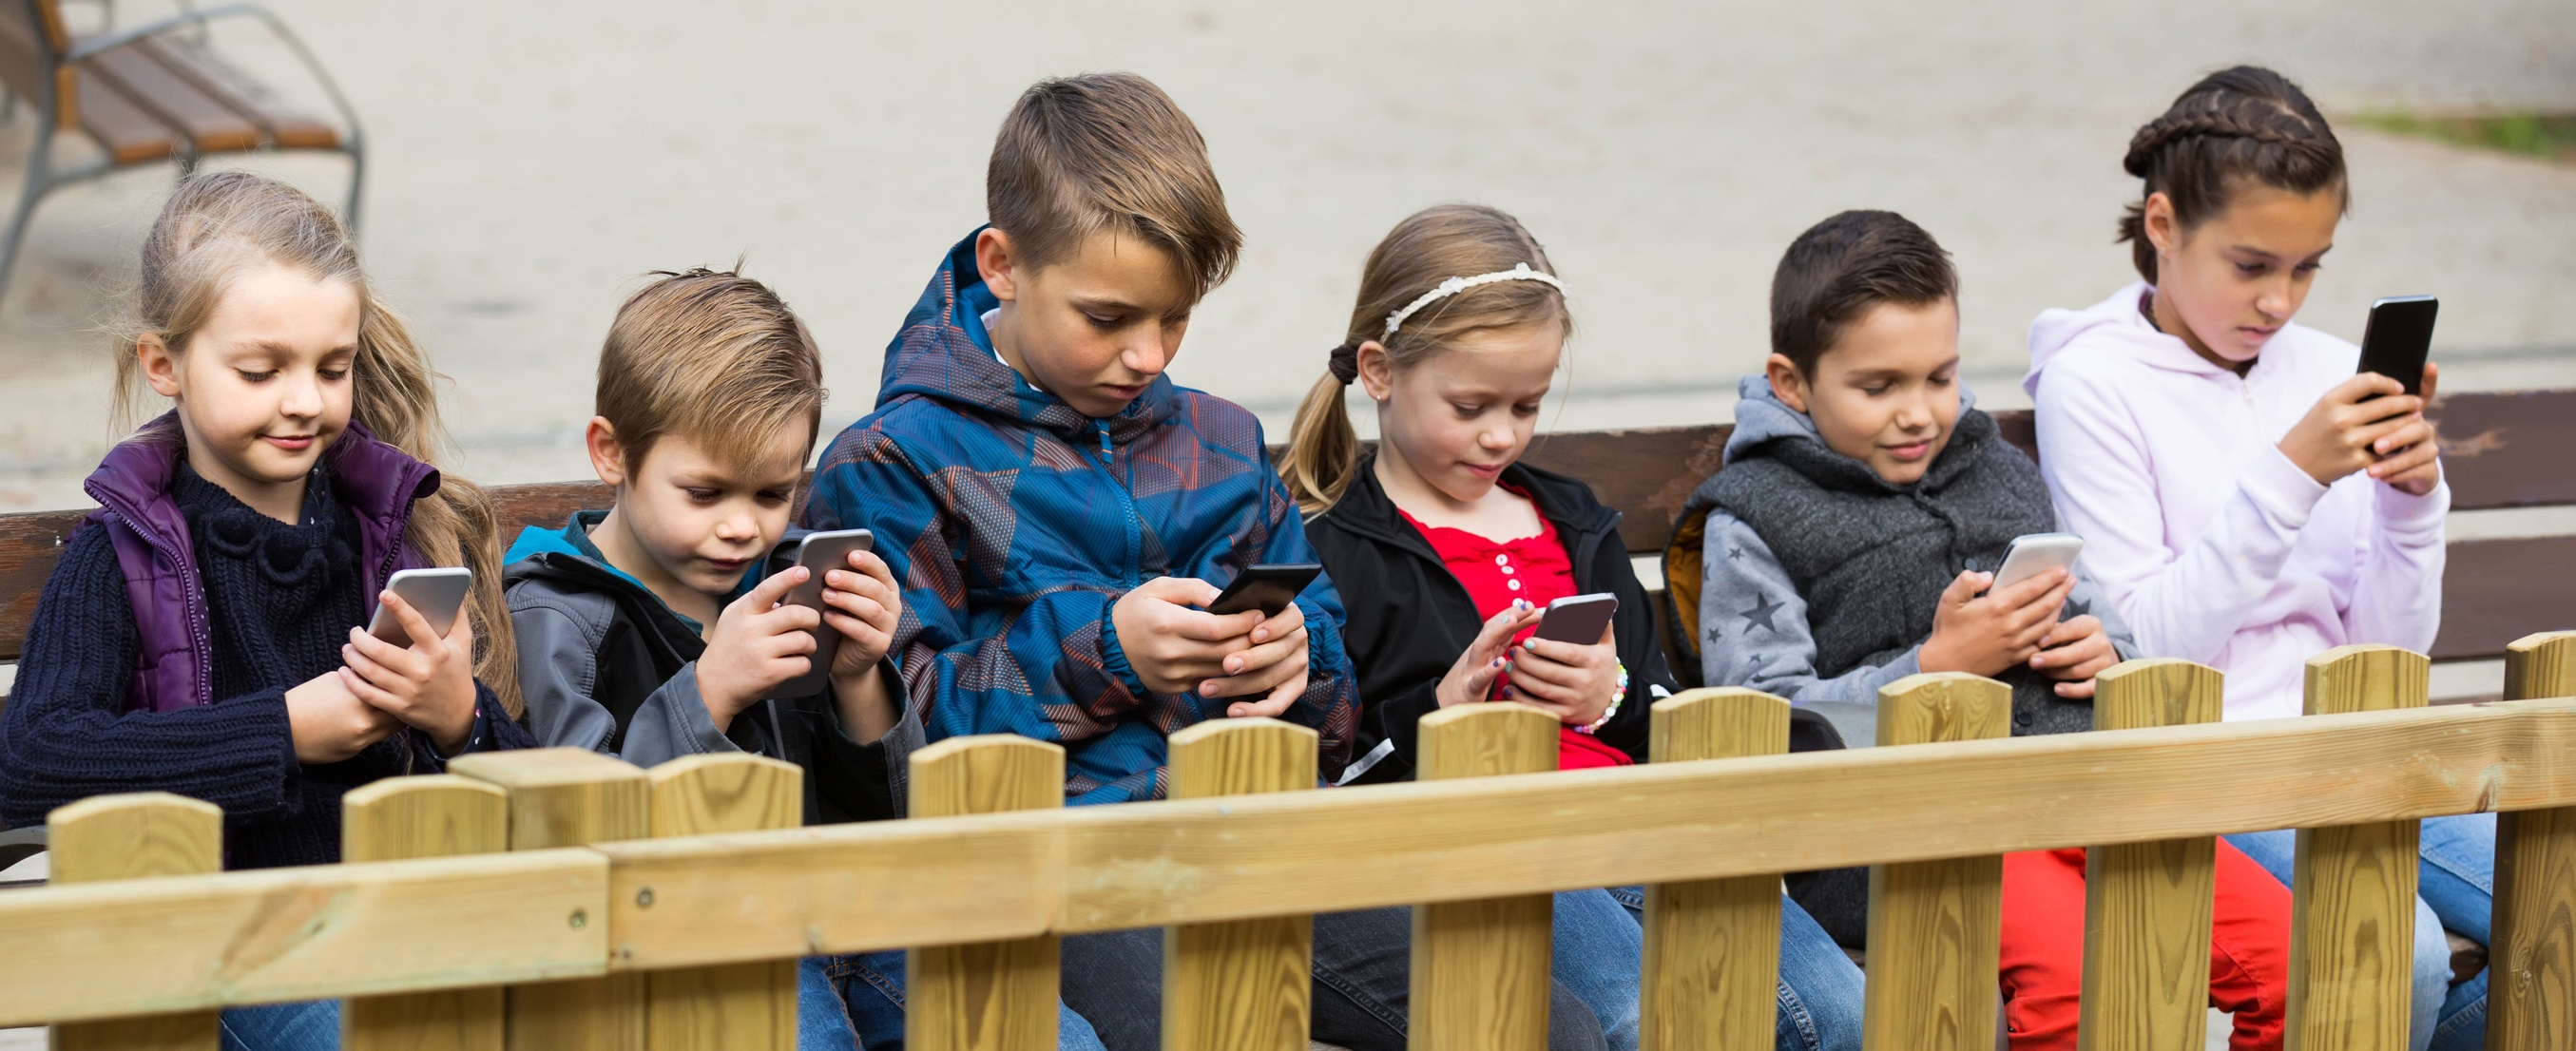 Technology, social media, and our tweens and teens